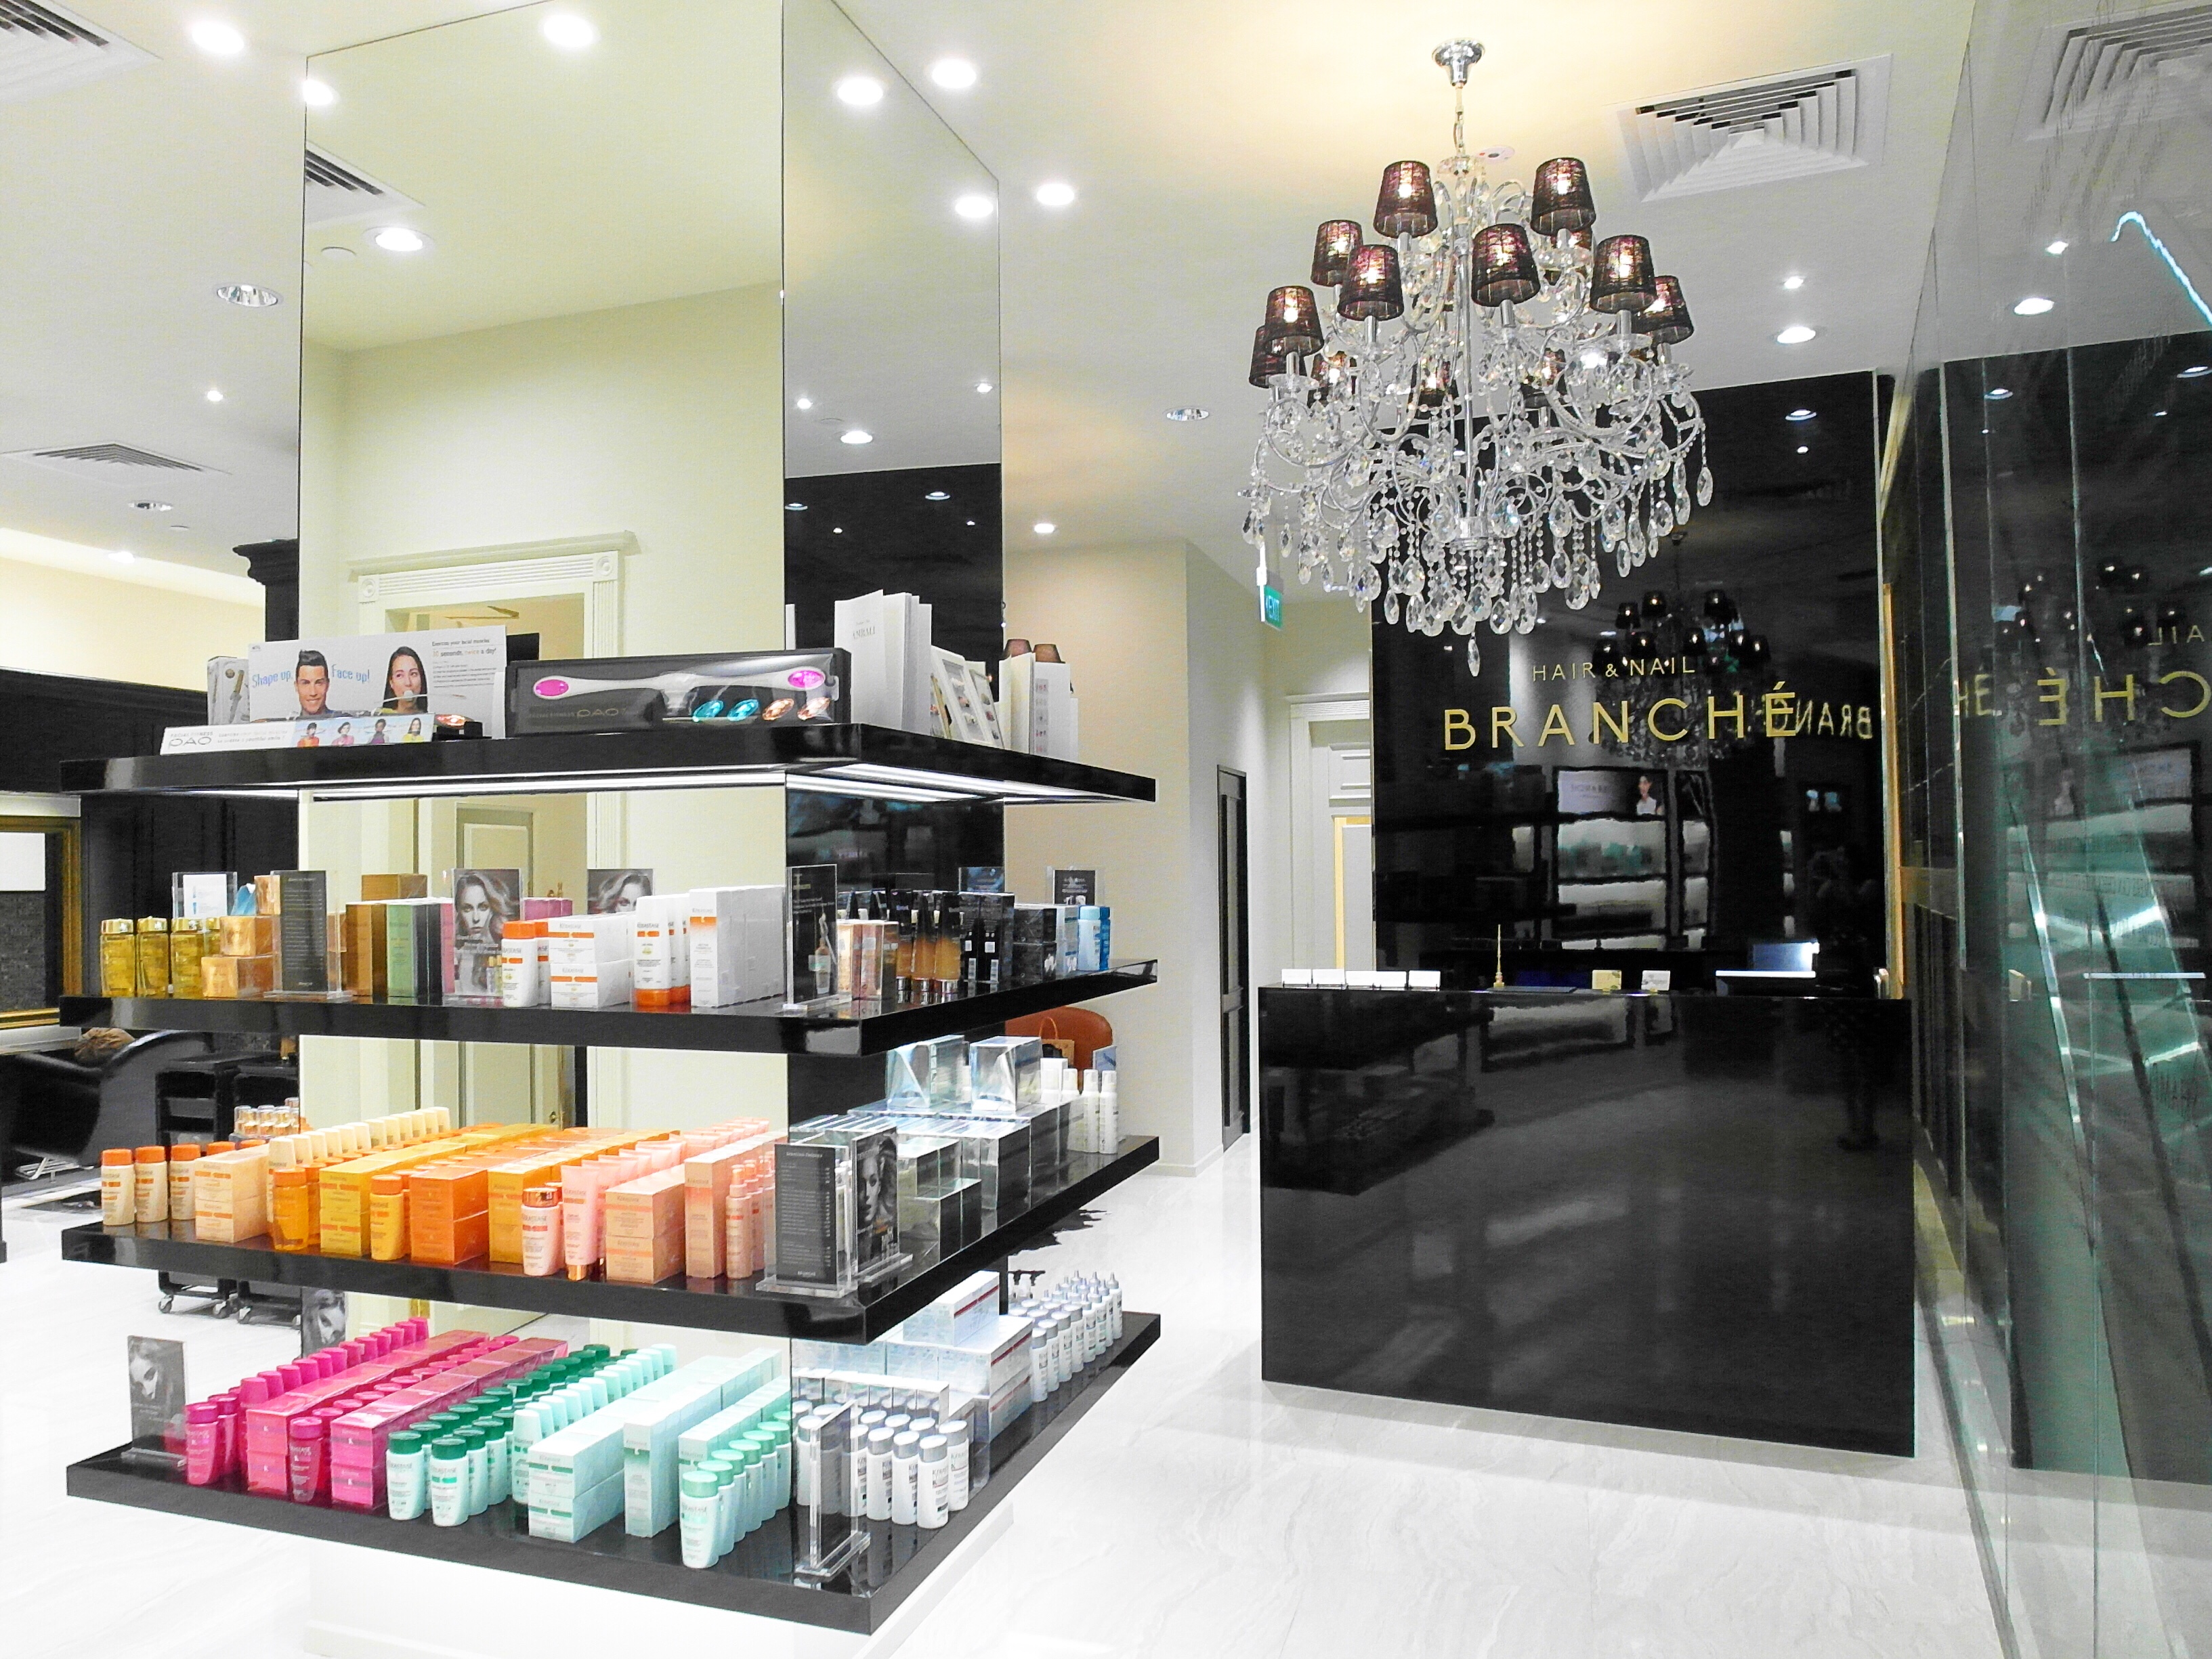 BRANCHÉ- The Japanese Hair & Nail Salon Review – Sharon A Chia